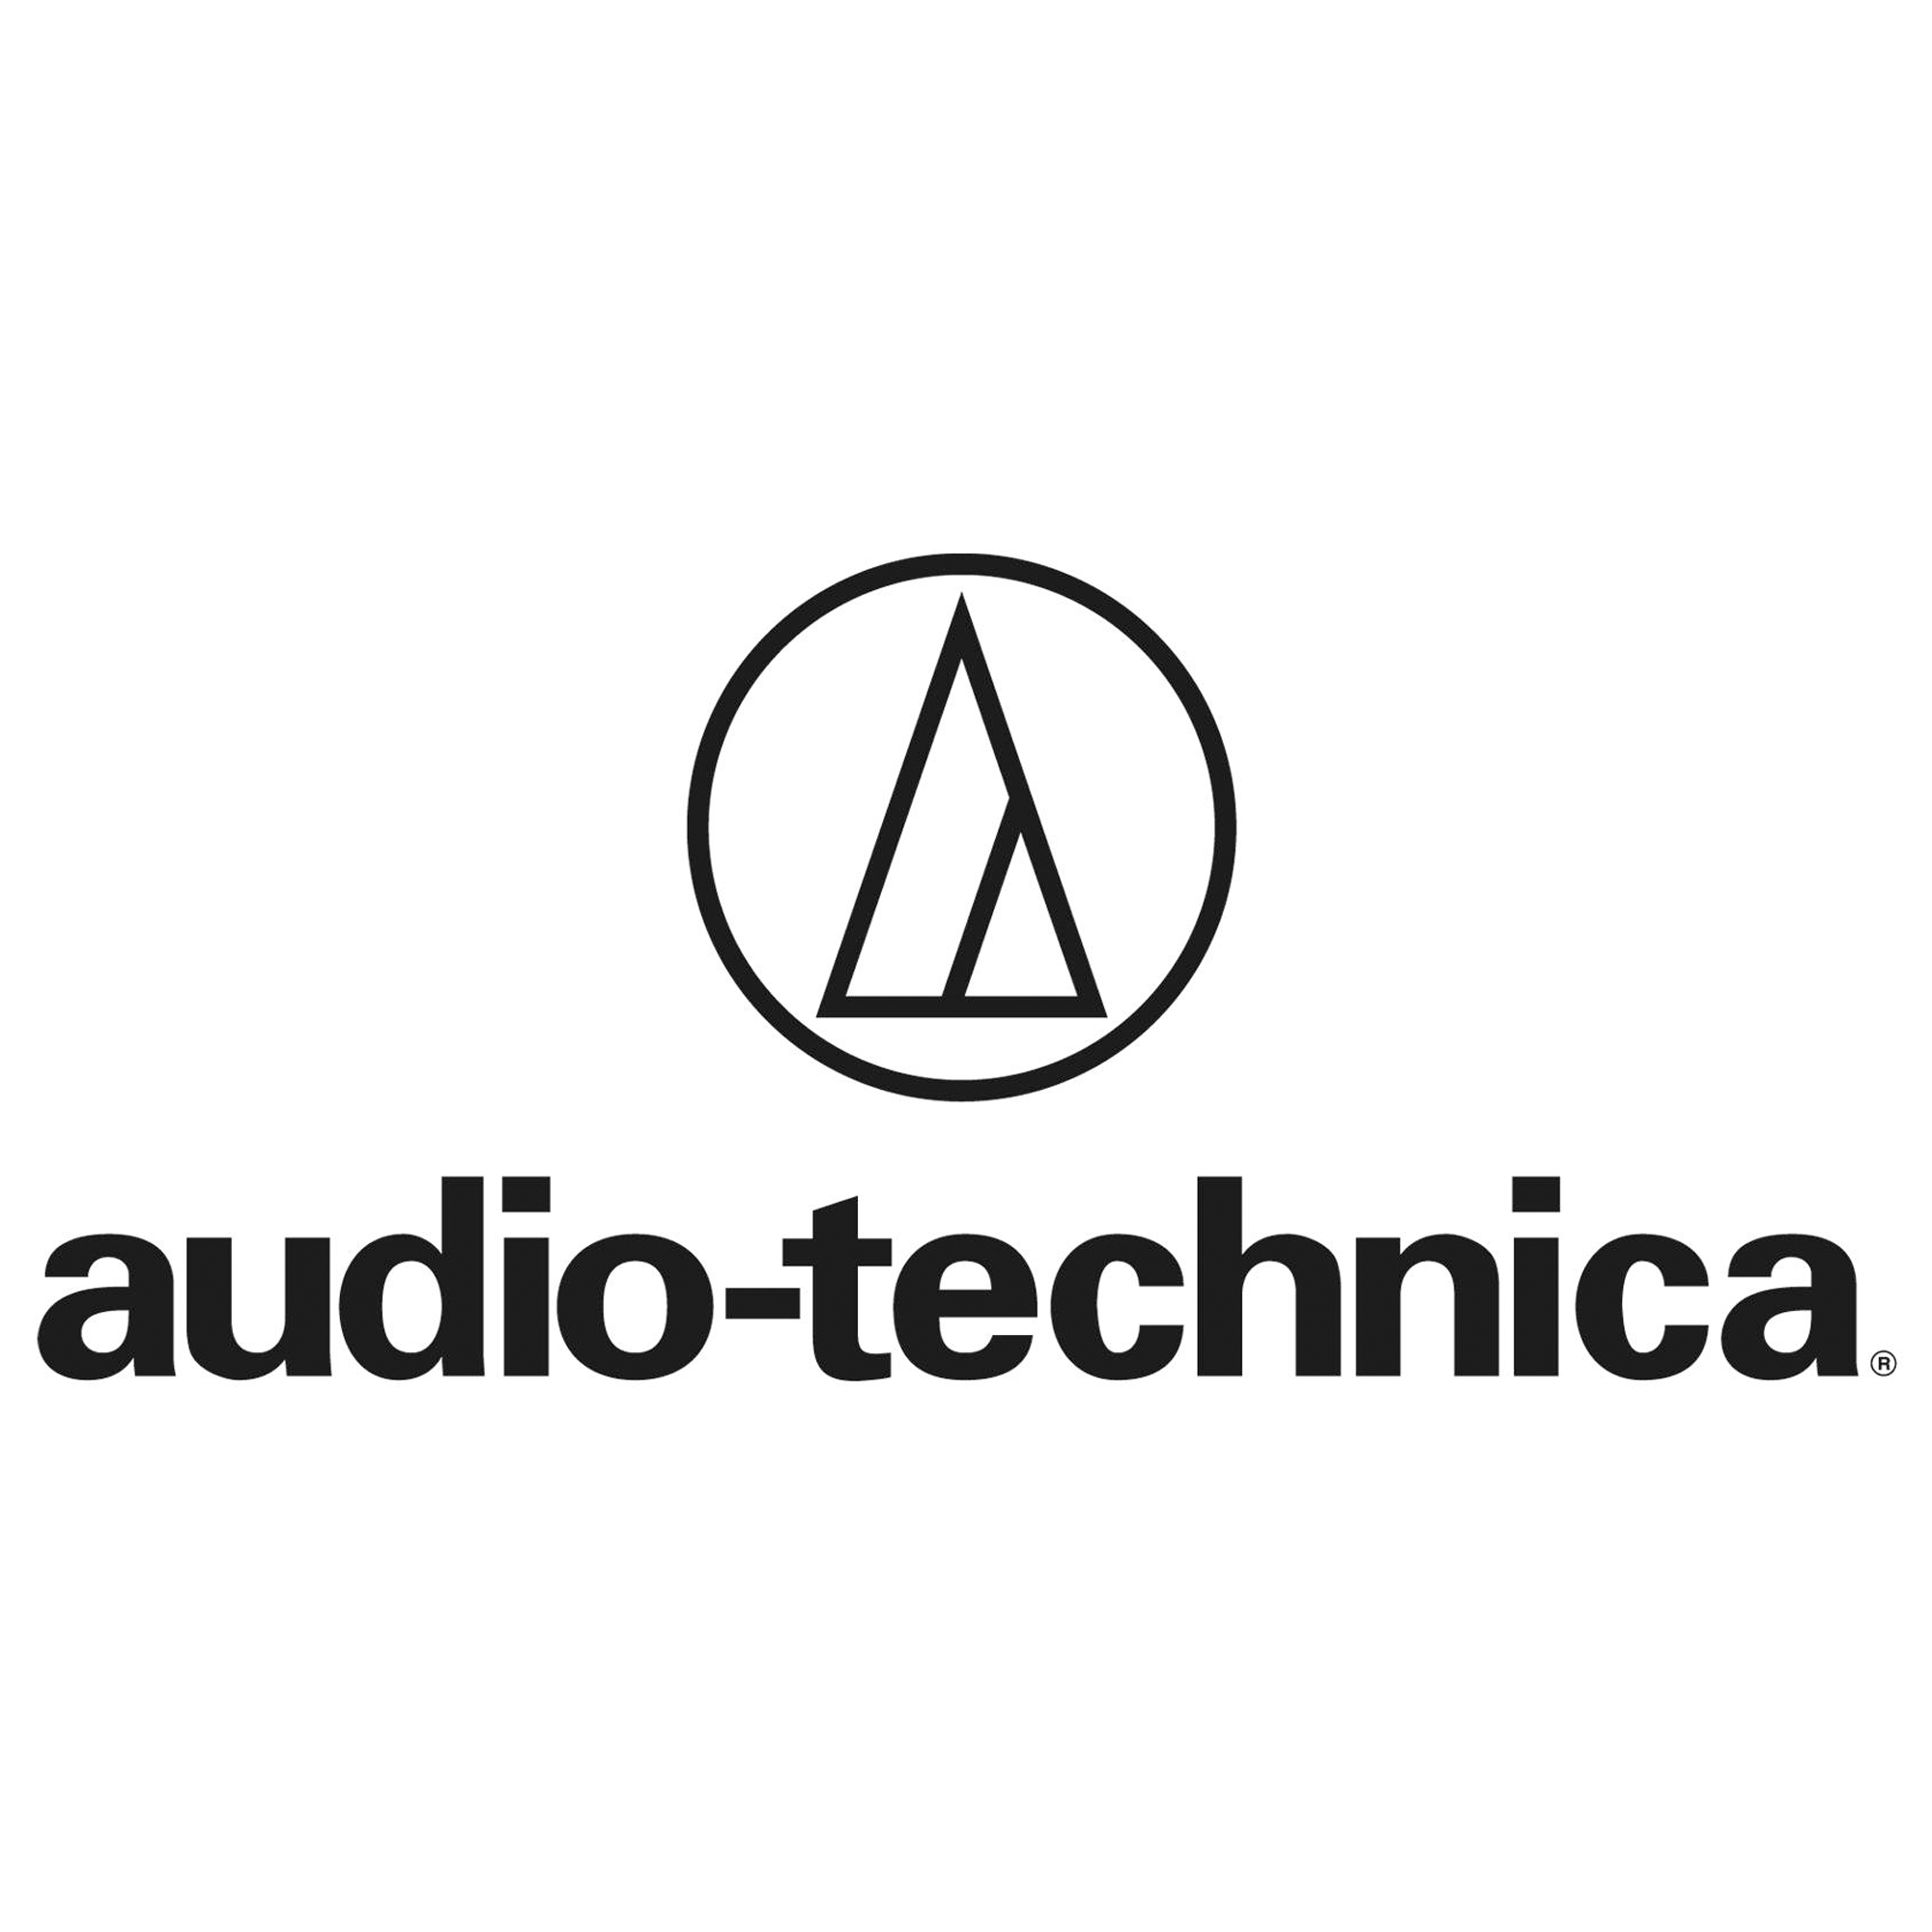 Audio-Technica AC12 Antenna Cable